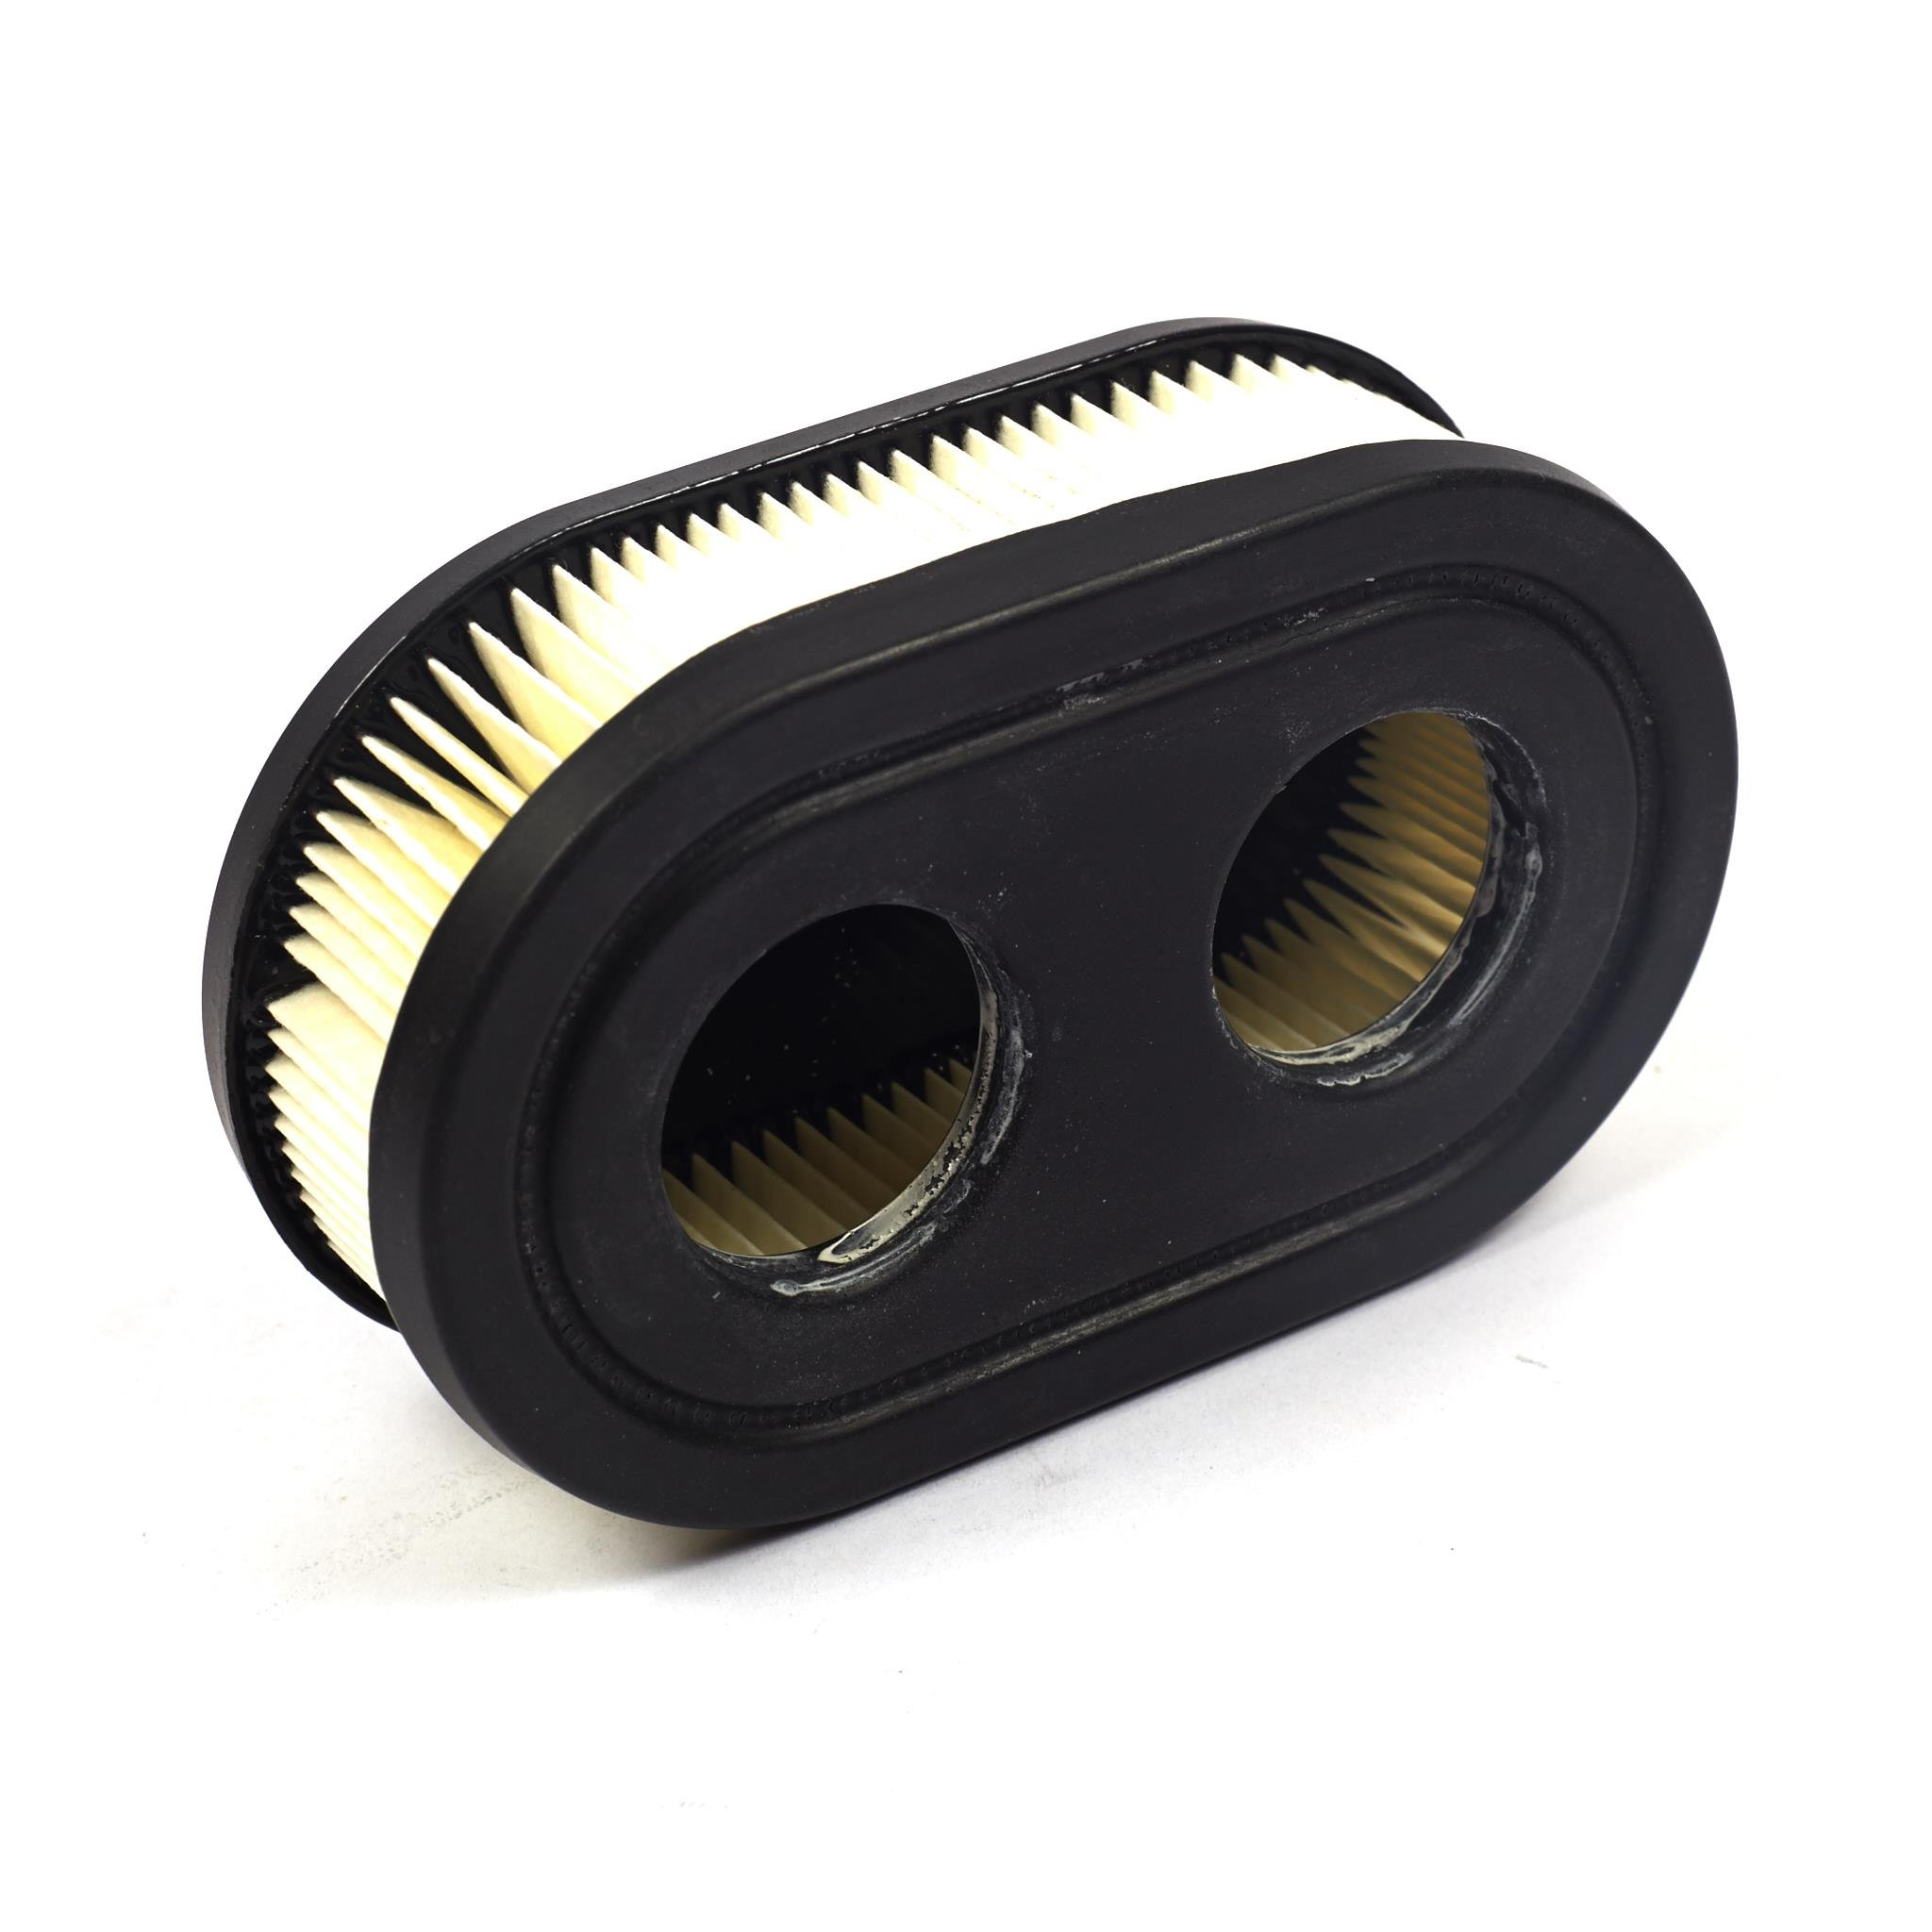 798452 Air filter for Briggs /& Stratton 593260 798339